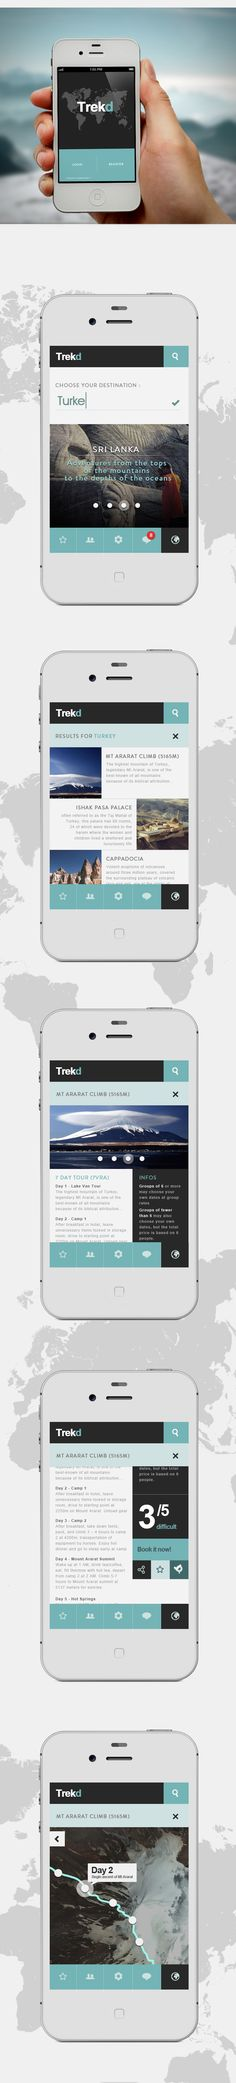 Extremely Helpful Apps You Should Have When Travelling Trekd (app concept) | Designer: Thomas Le Corre - Watch Create Short Meaningful Videos via Gloopt. itunes.apple.com/...